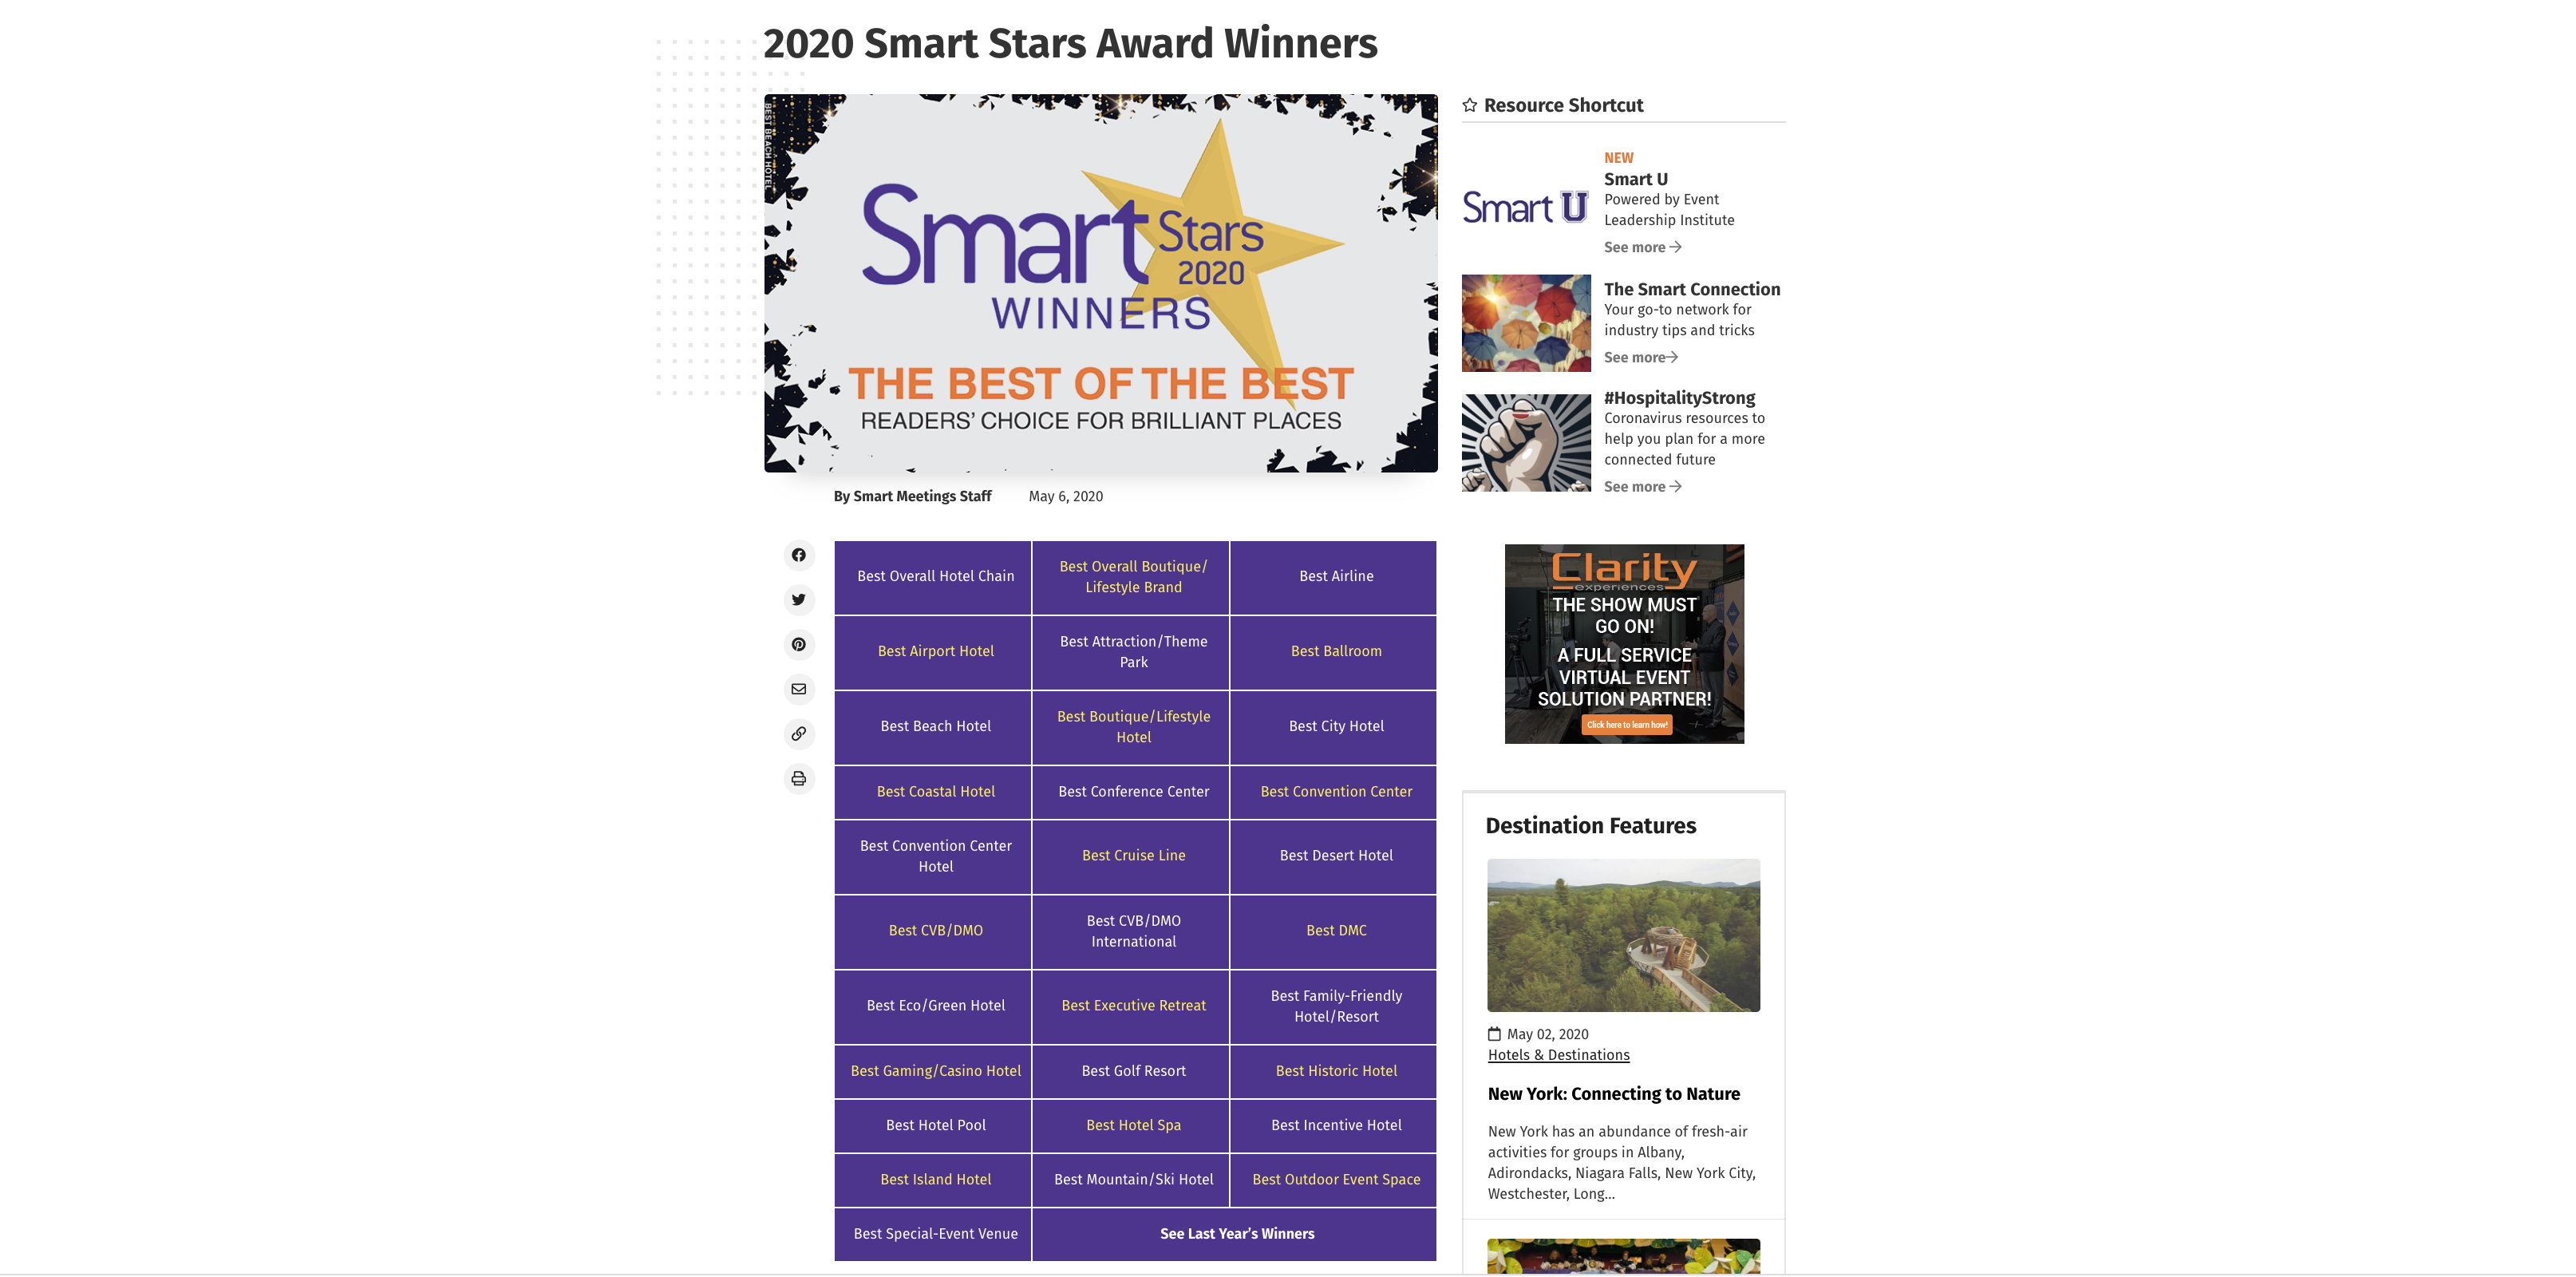 Smart Stars 2020 Winners The Best of the Best Readers